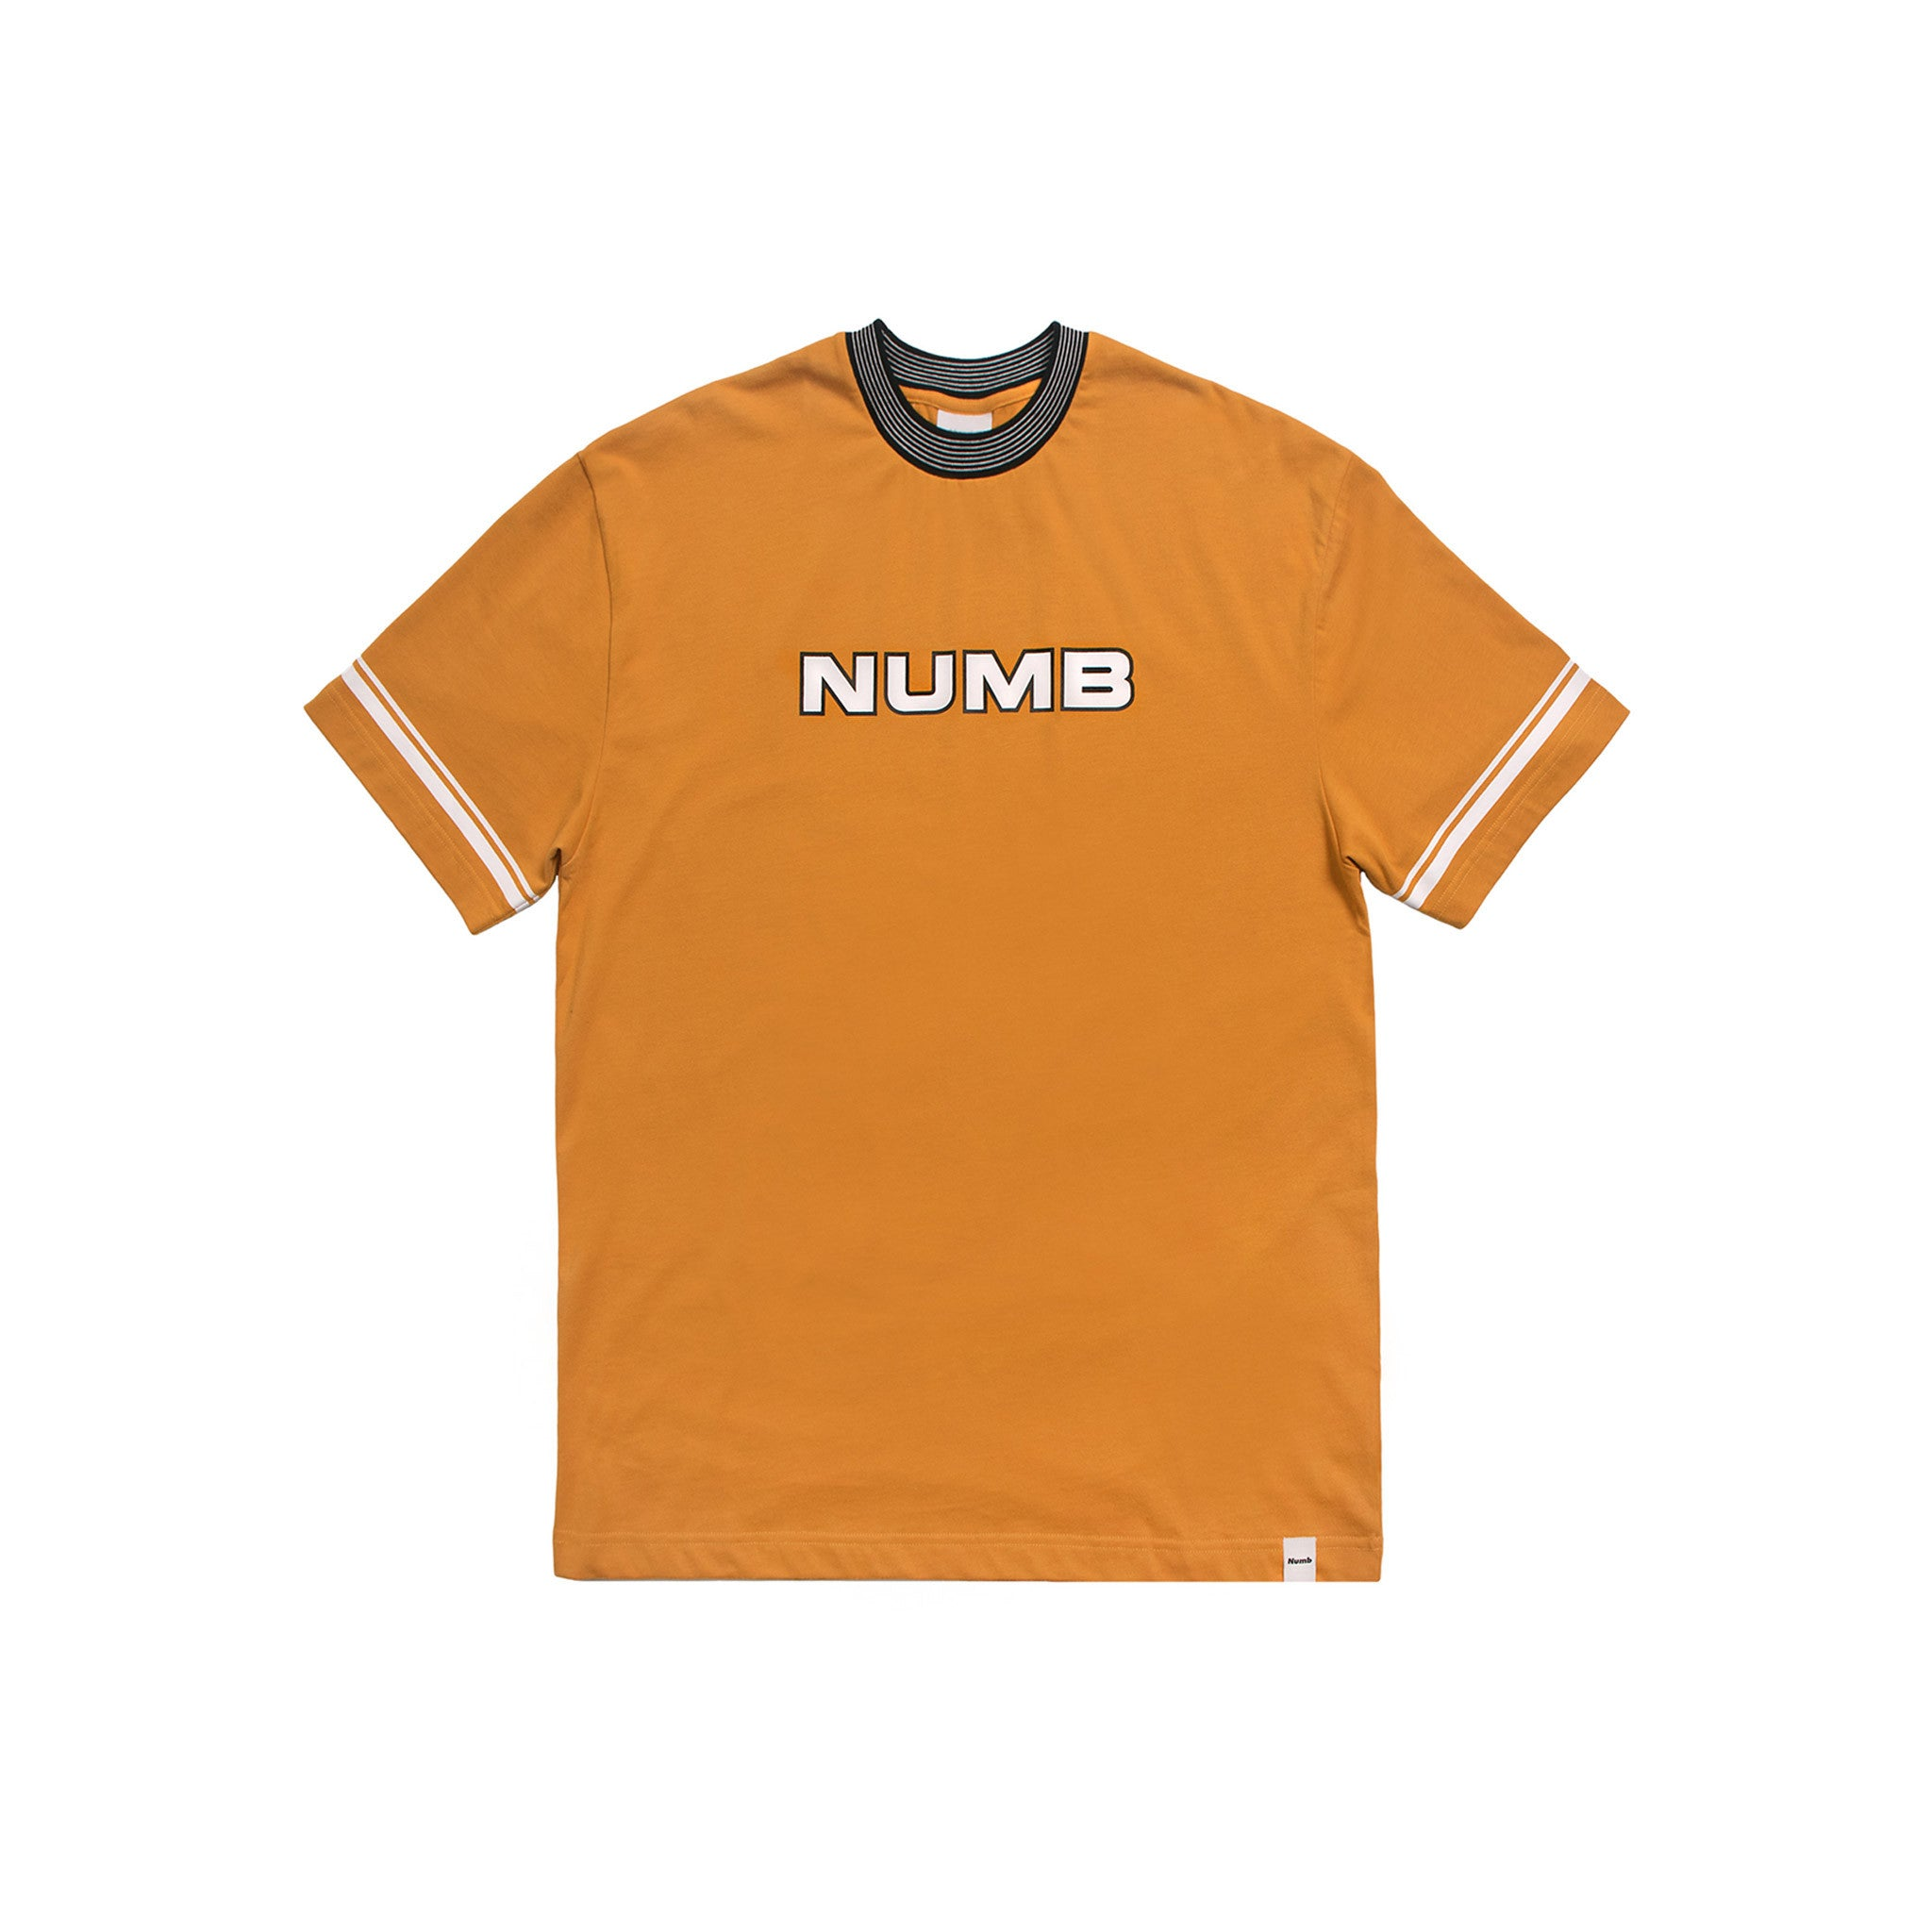 Worldwide Champs Jersey Numb T-Shirt Mustard Front View